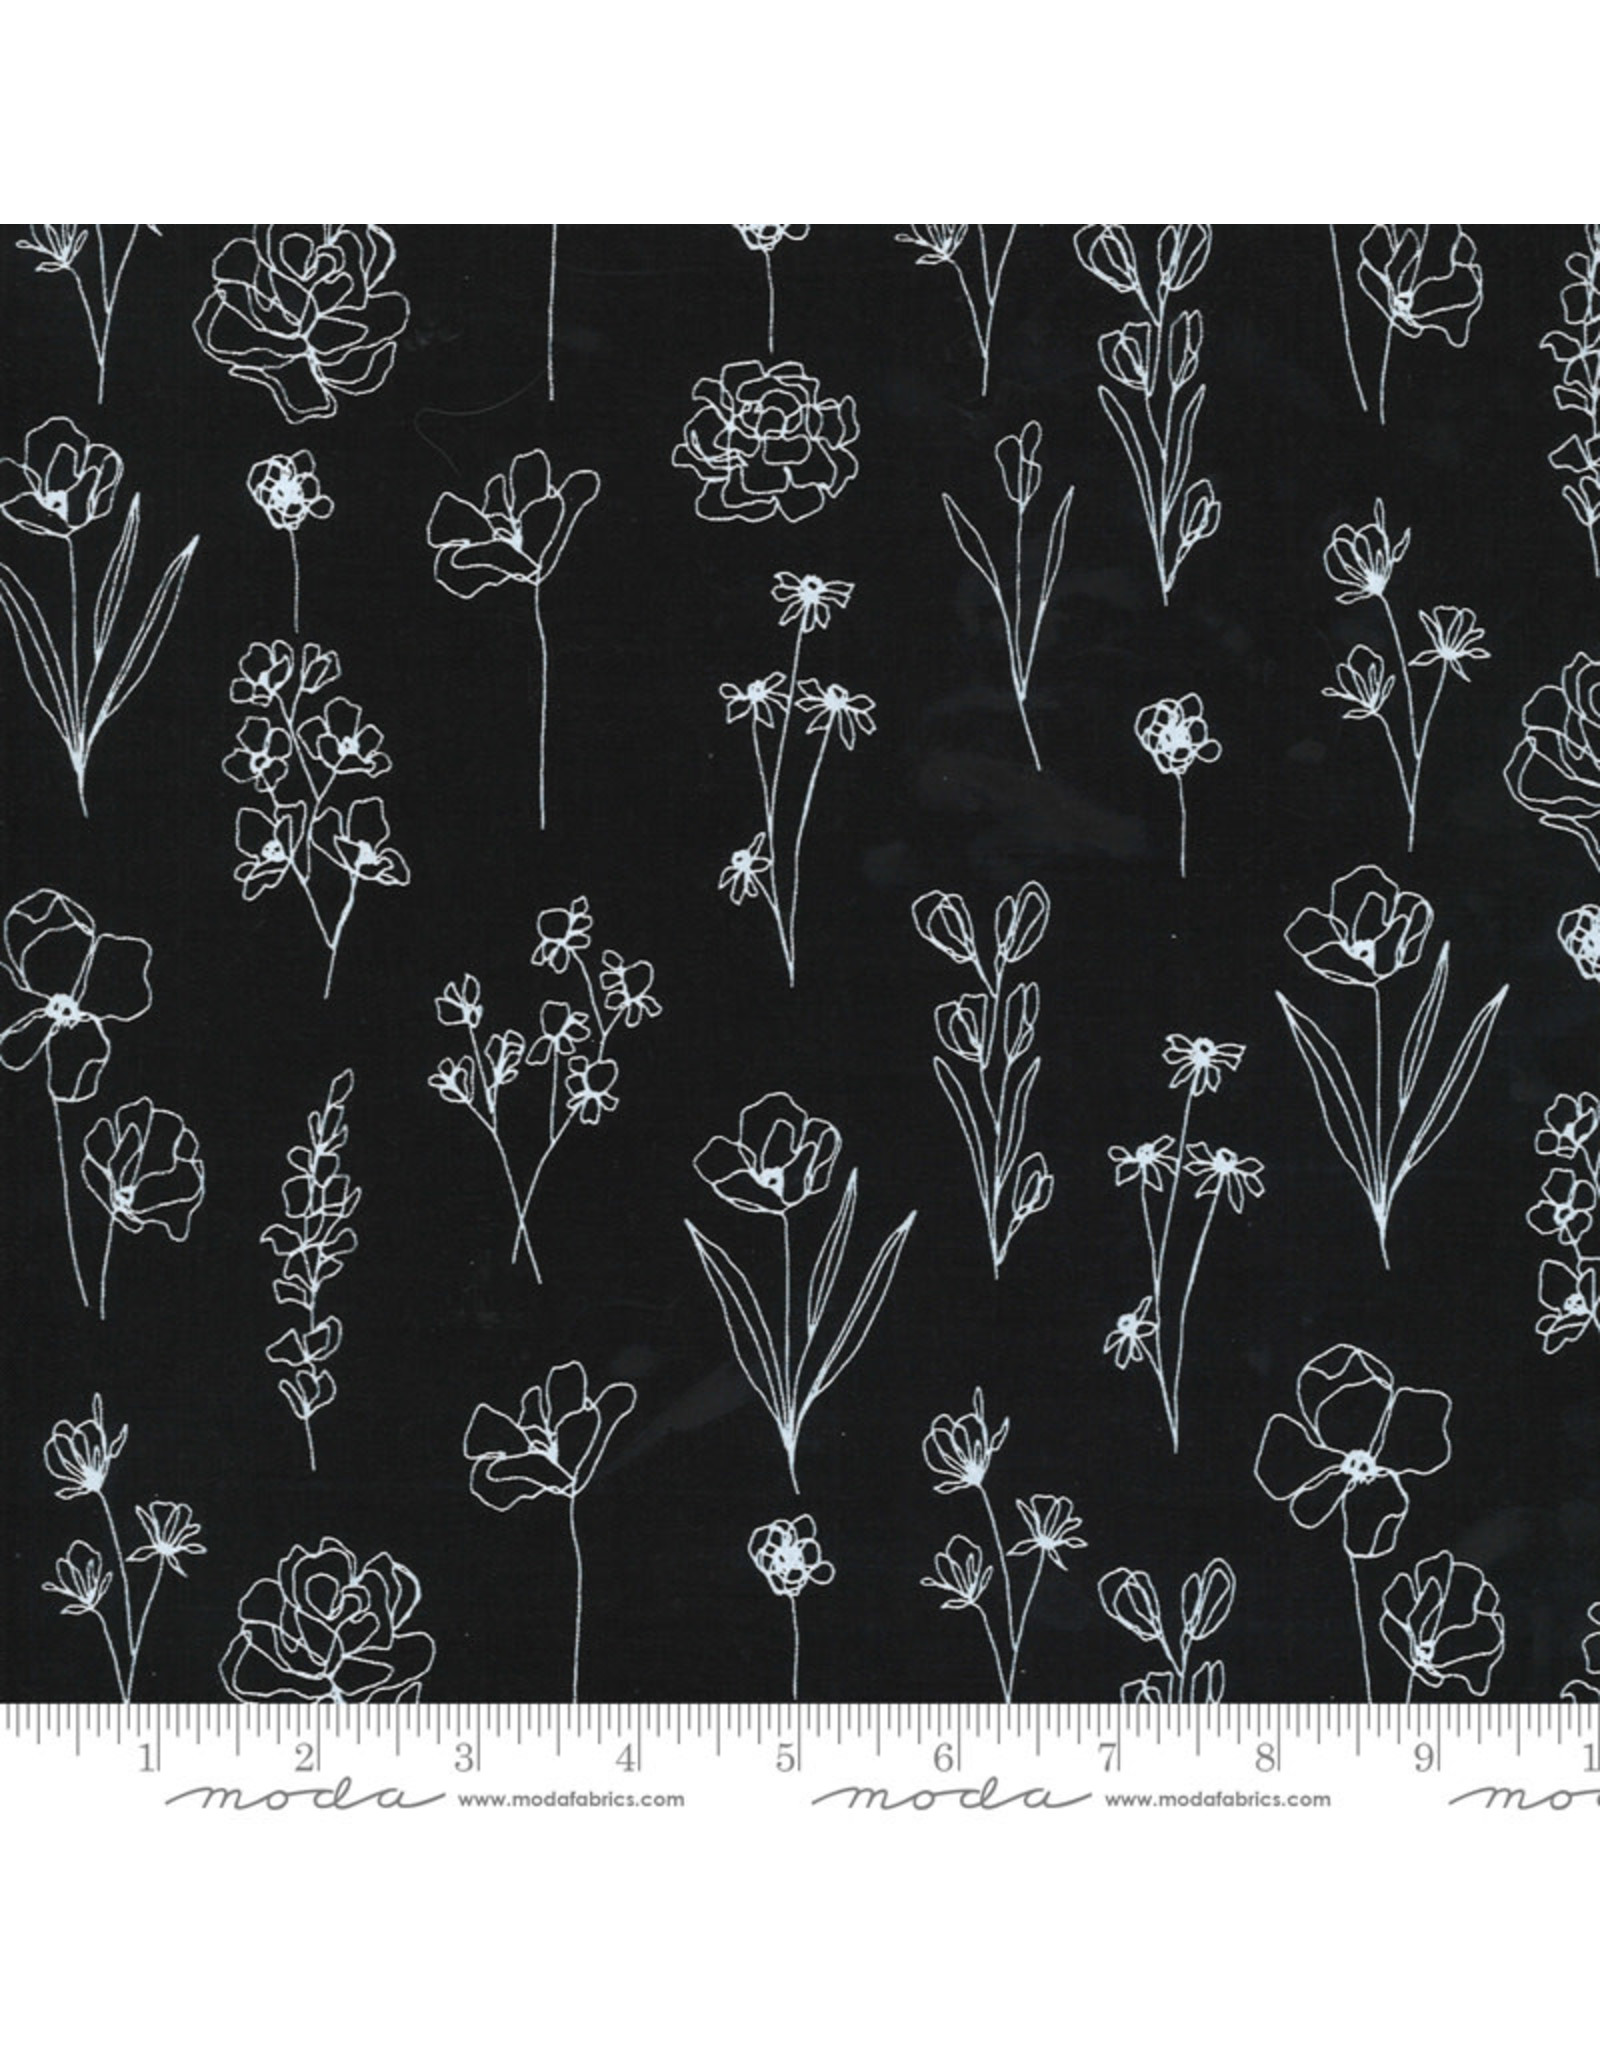 PD's Moda Collection Illustrations, Floral Doodle in Ink, Dinner Napkin